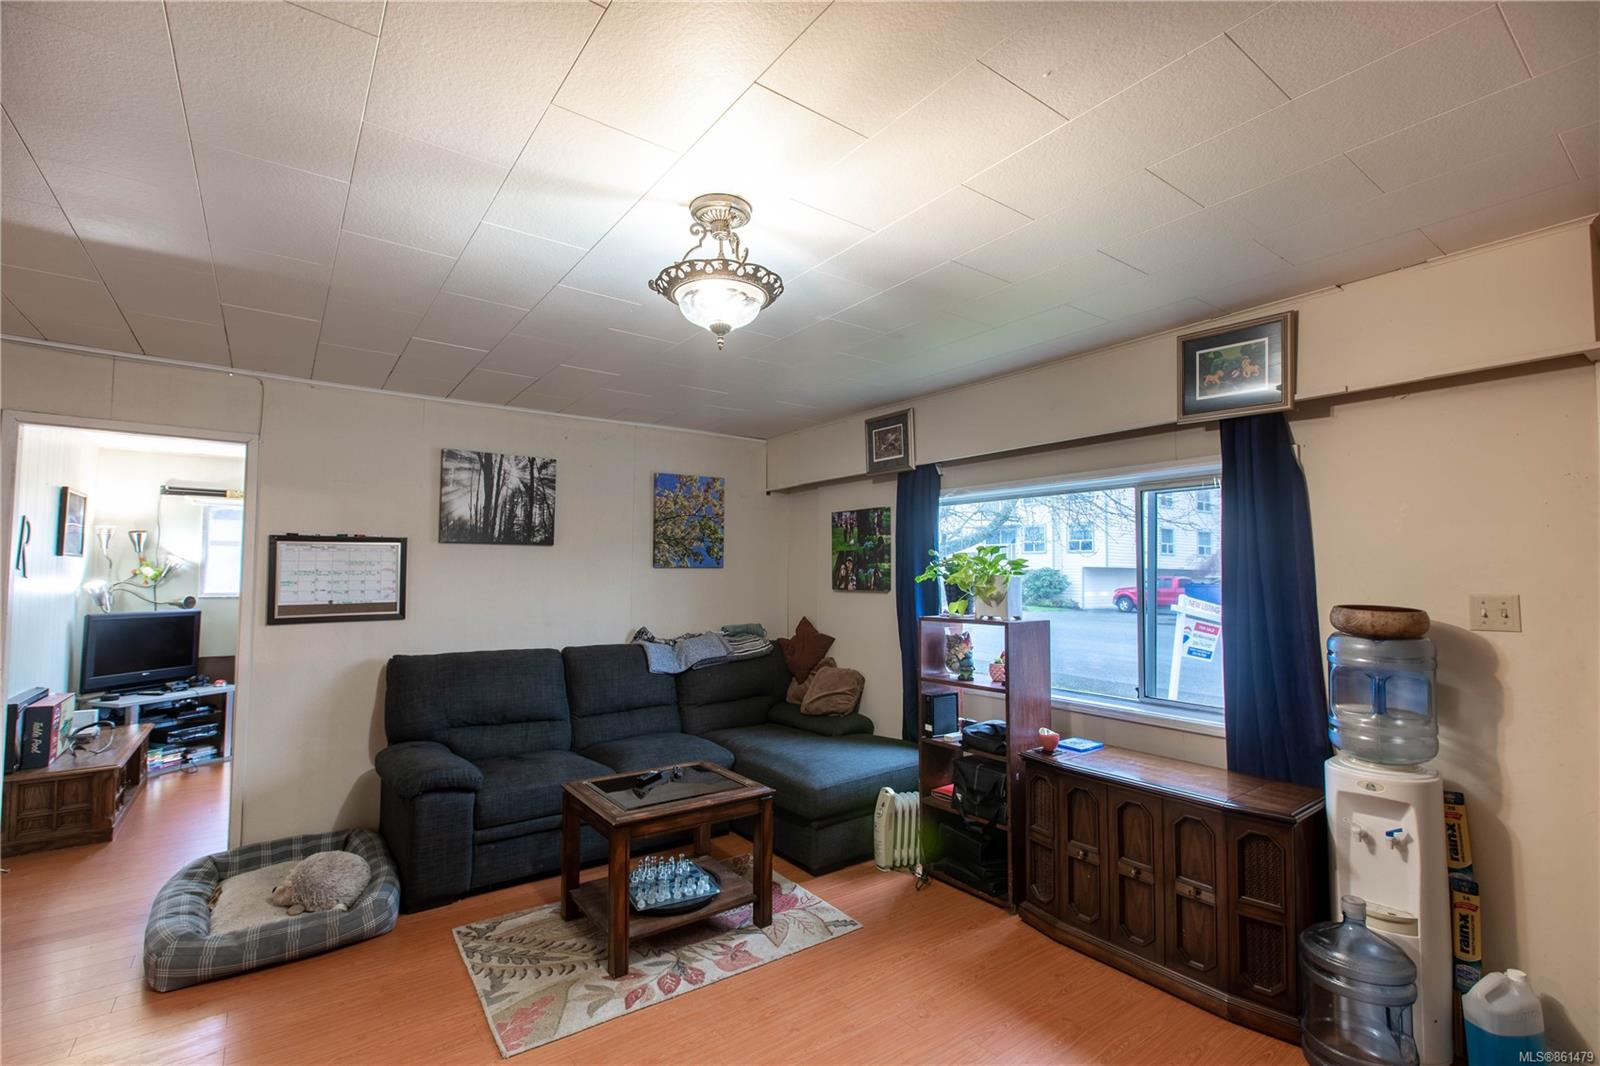 Photo 29 at 430 Festubert Street, Cowichan